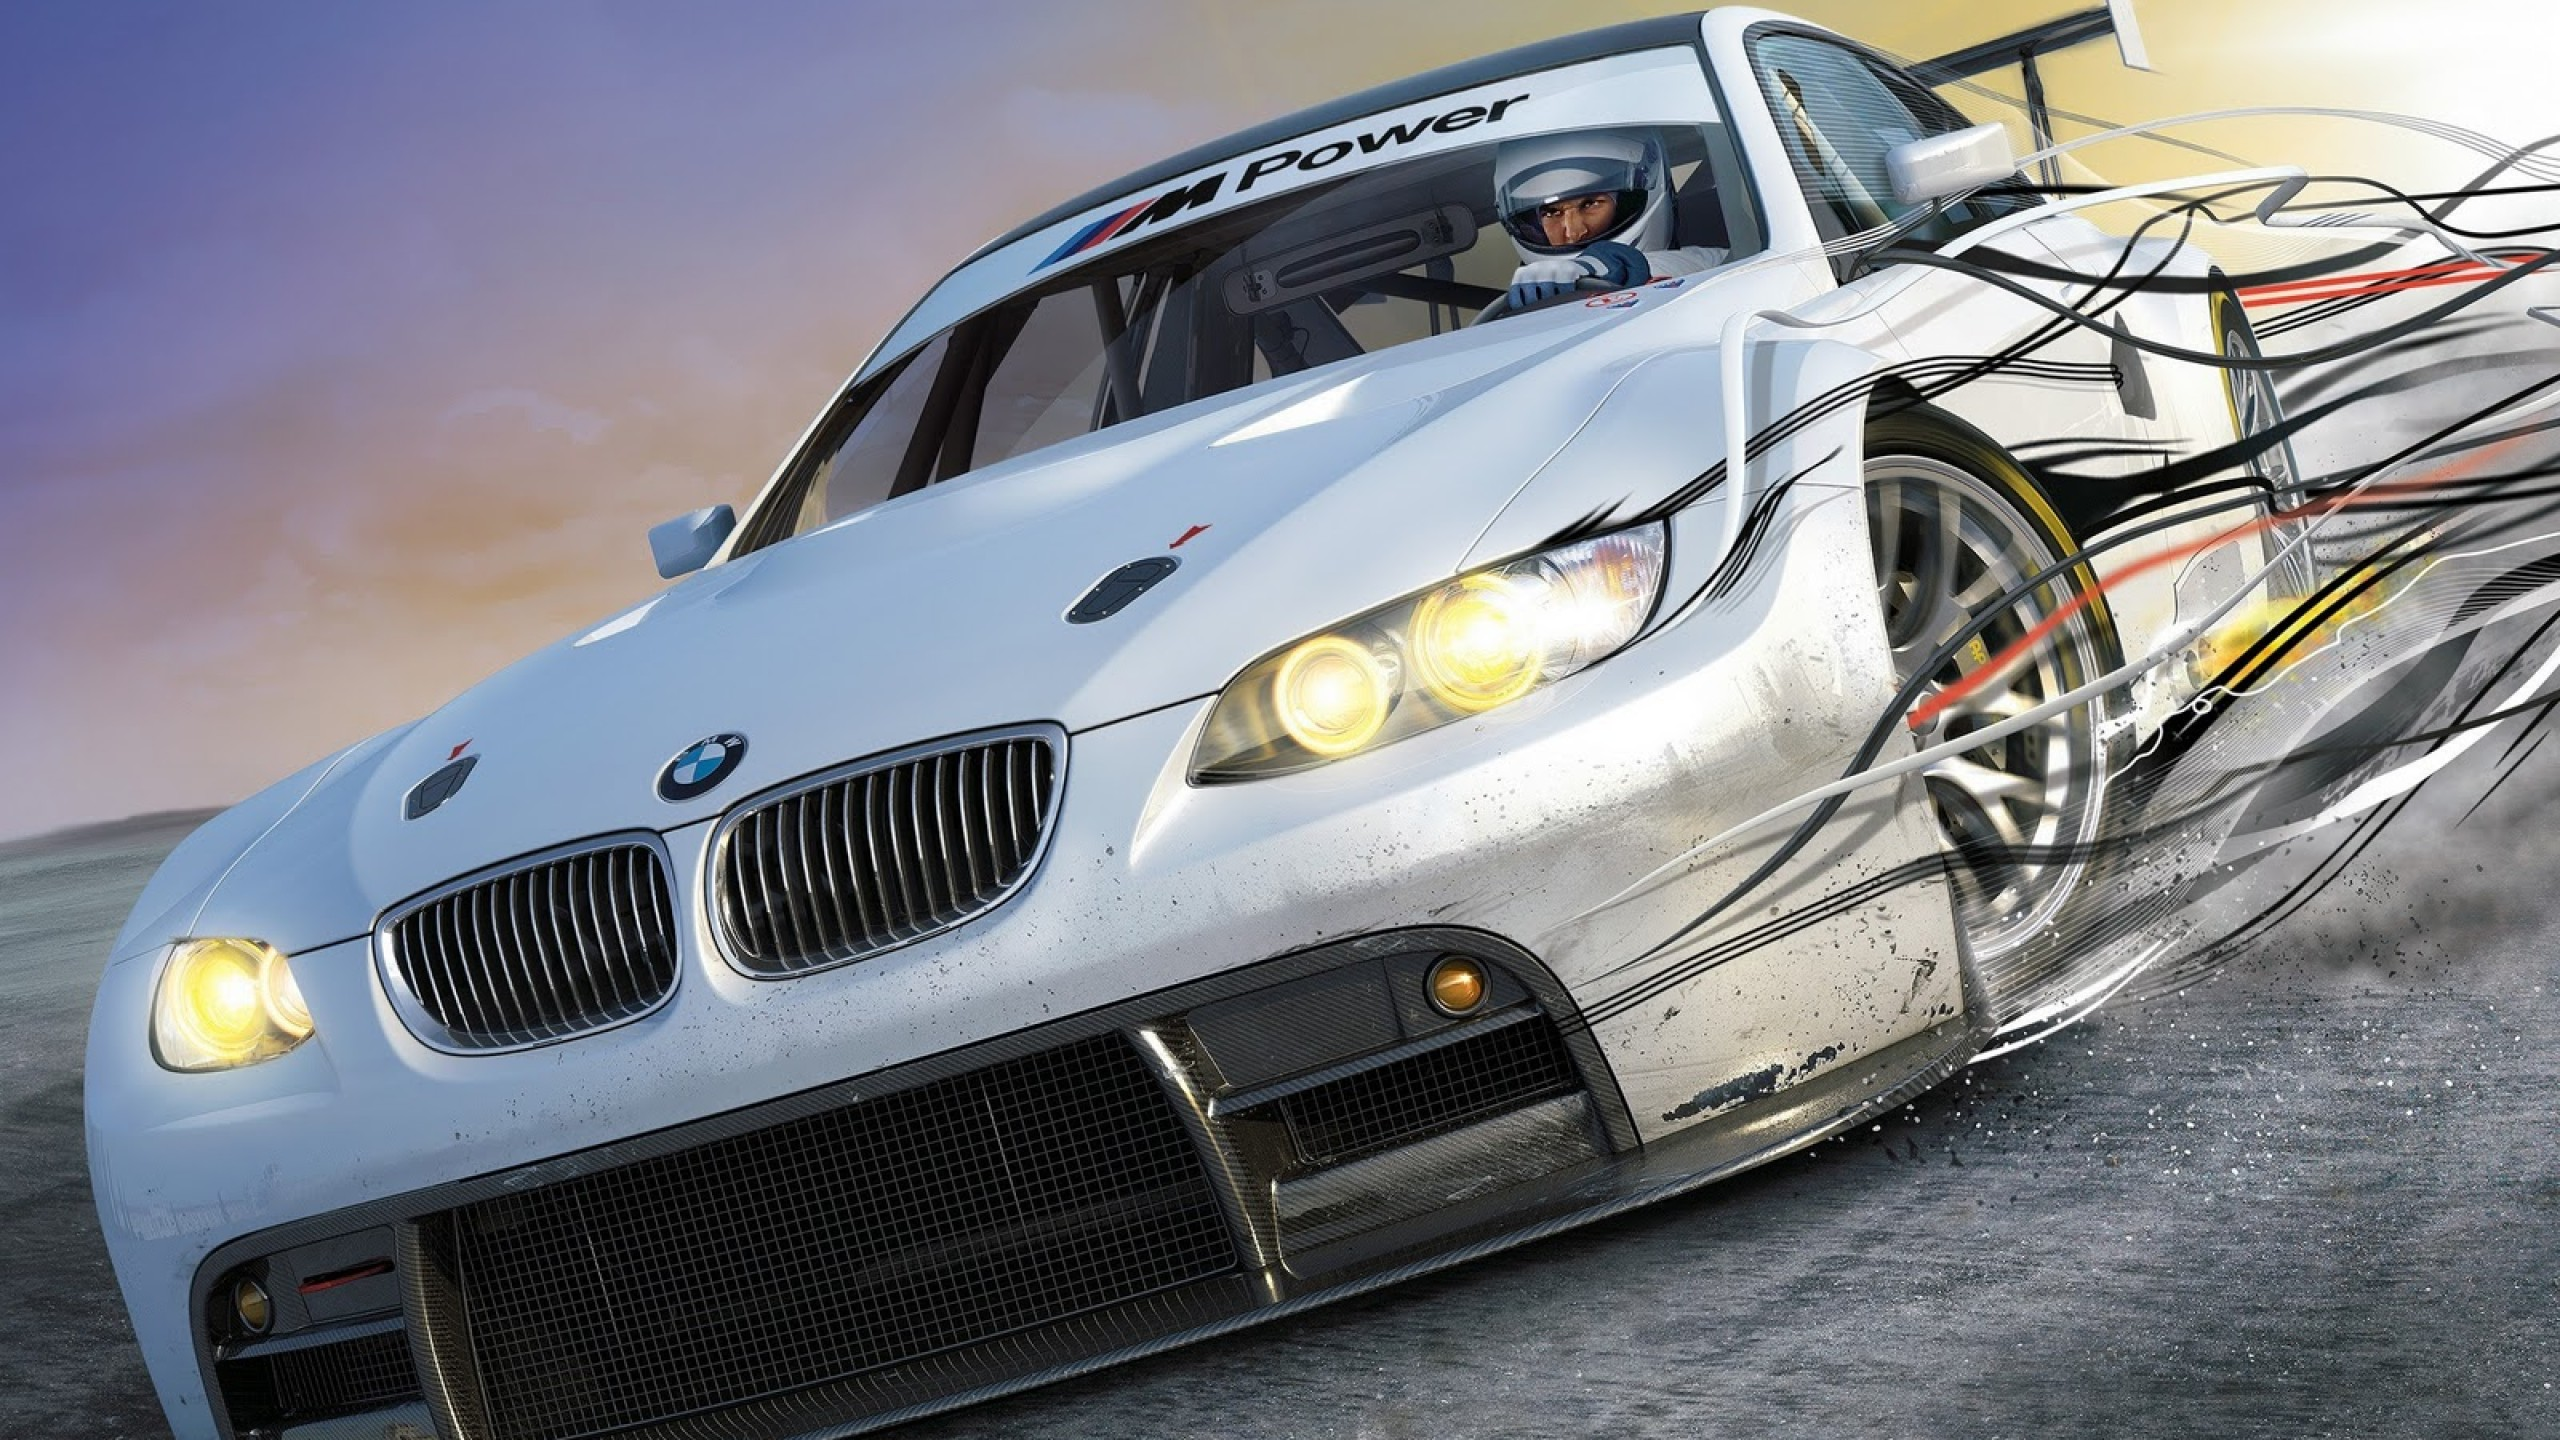 Bmw Drift Car Hd Wallpaper For Desktop And Mobiles Youtube Cover